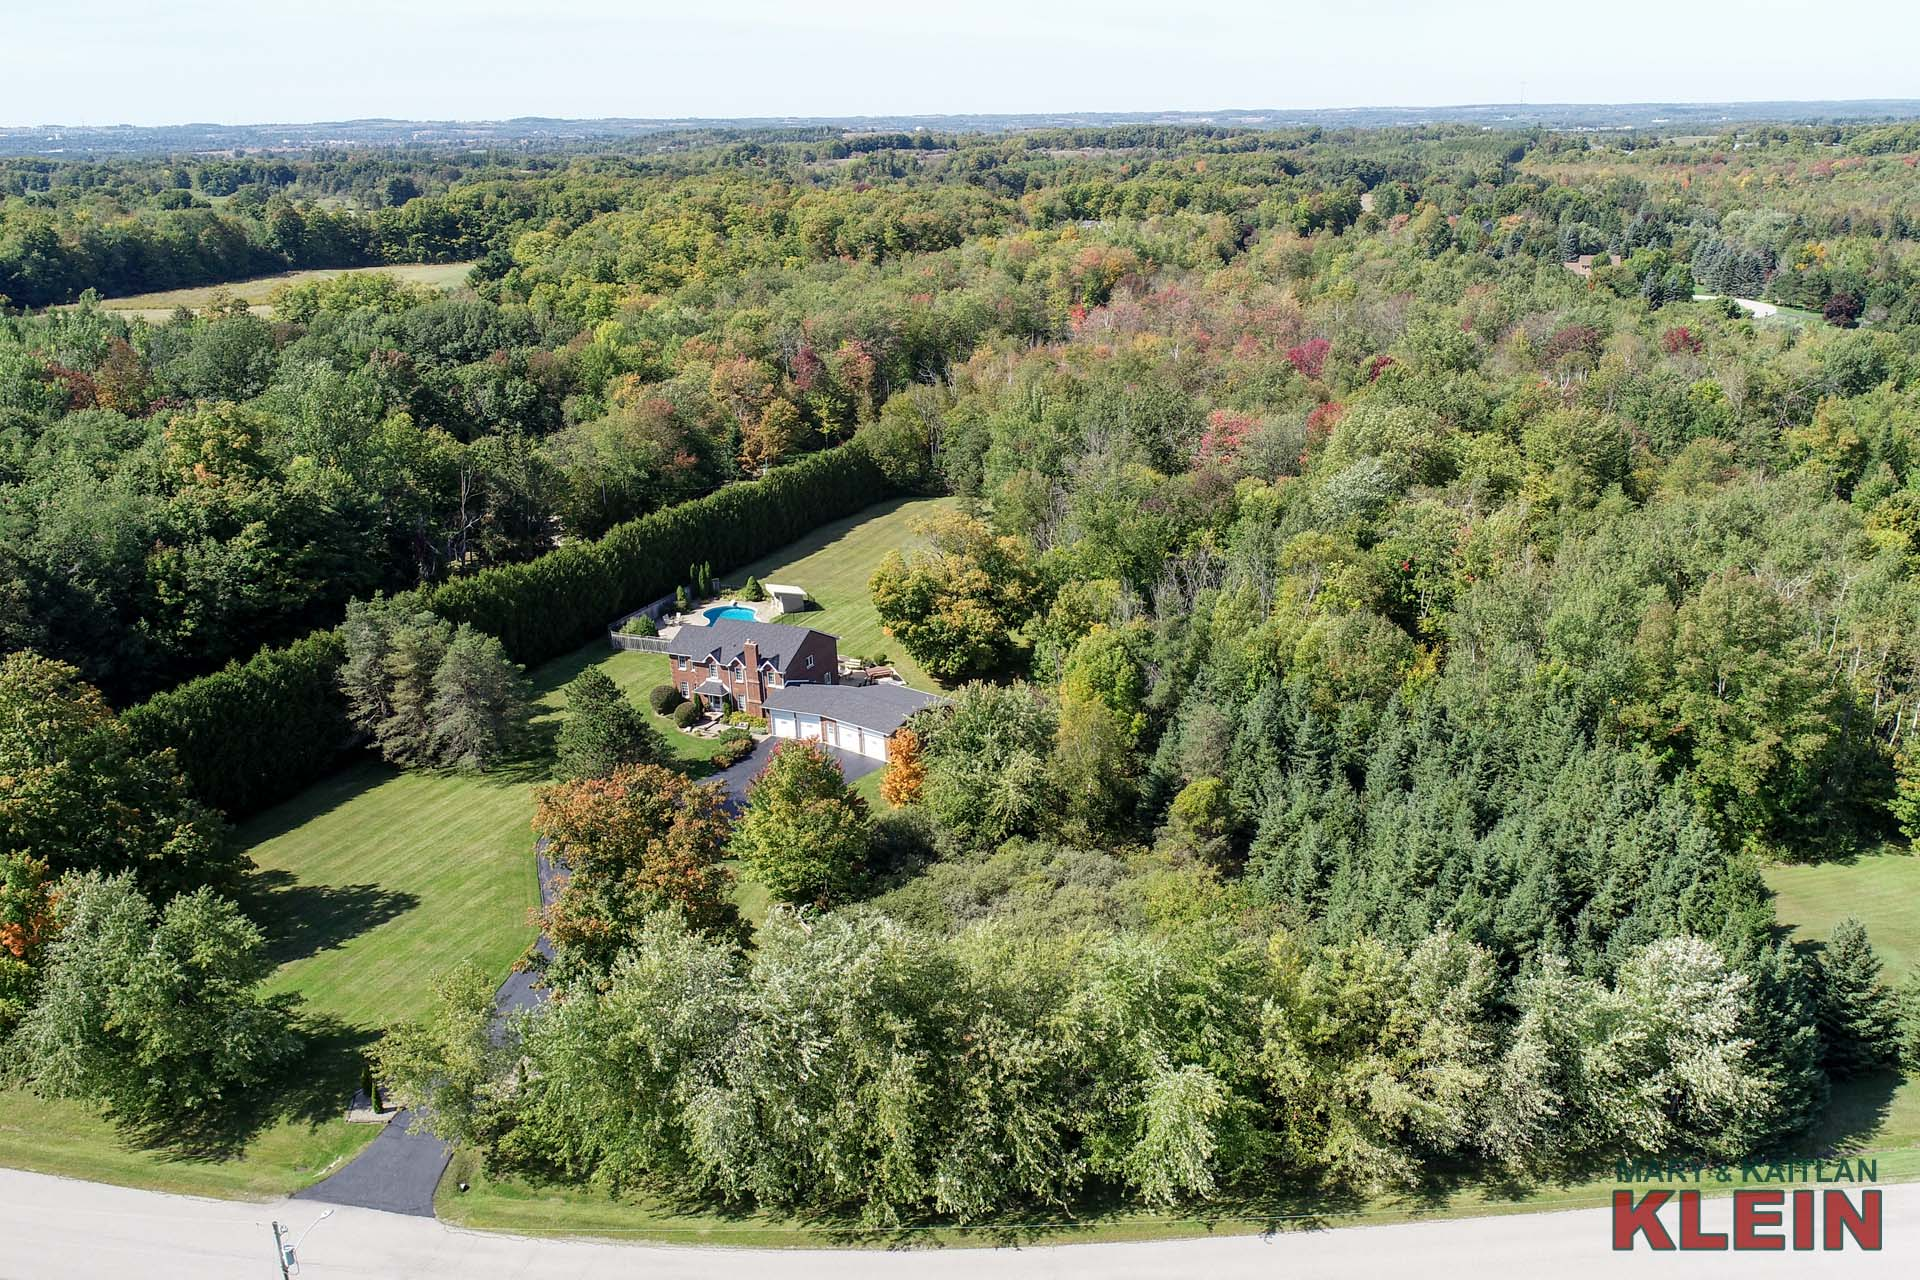 4 Car Garage, 4 bedroom home in Caledon